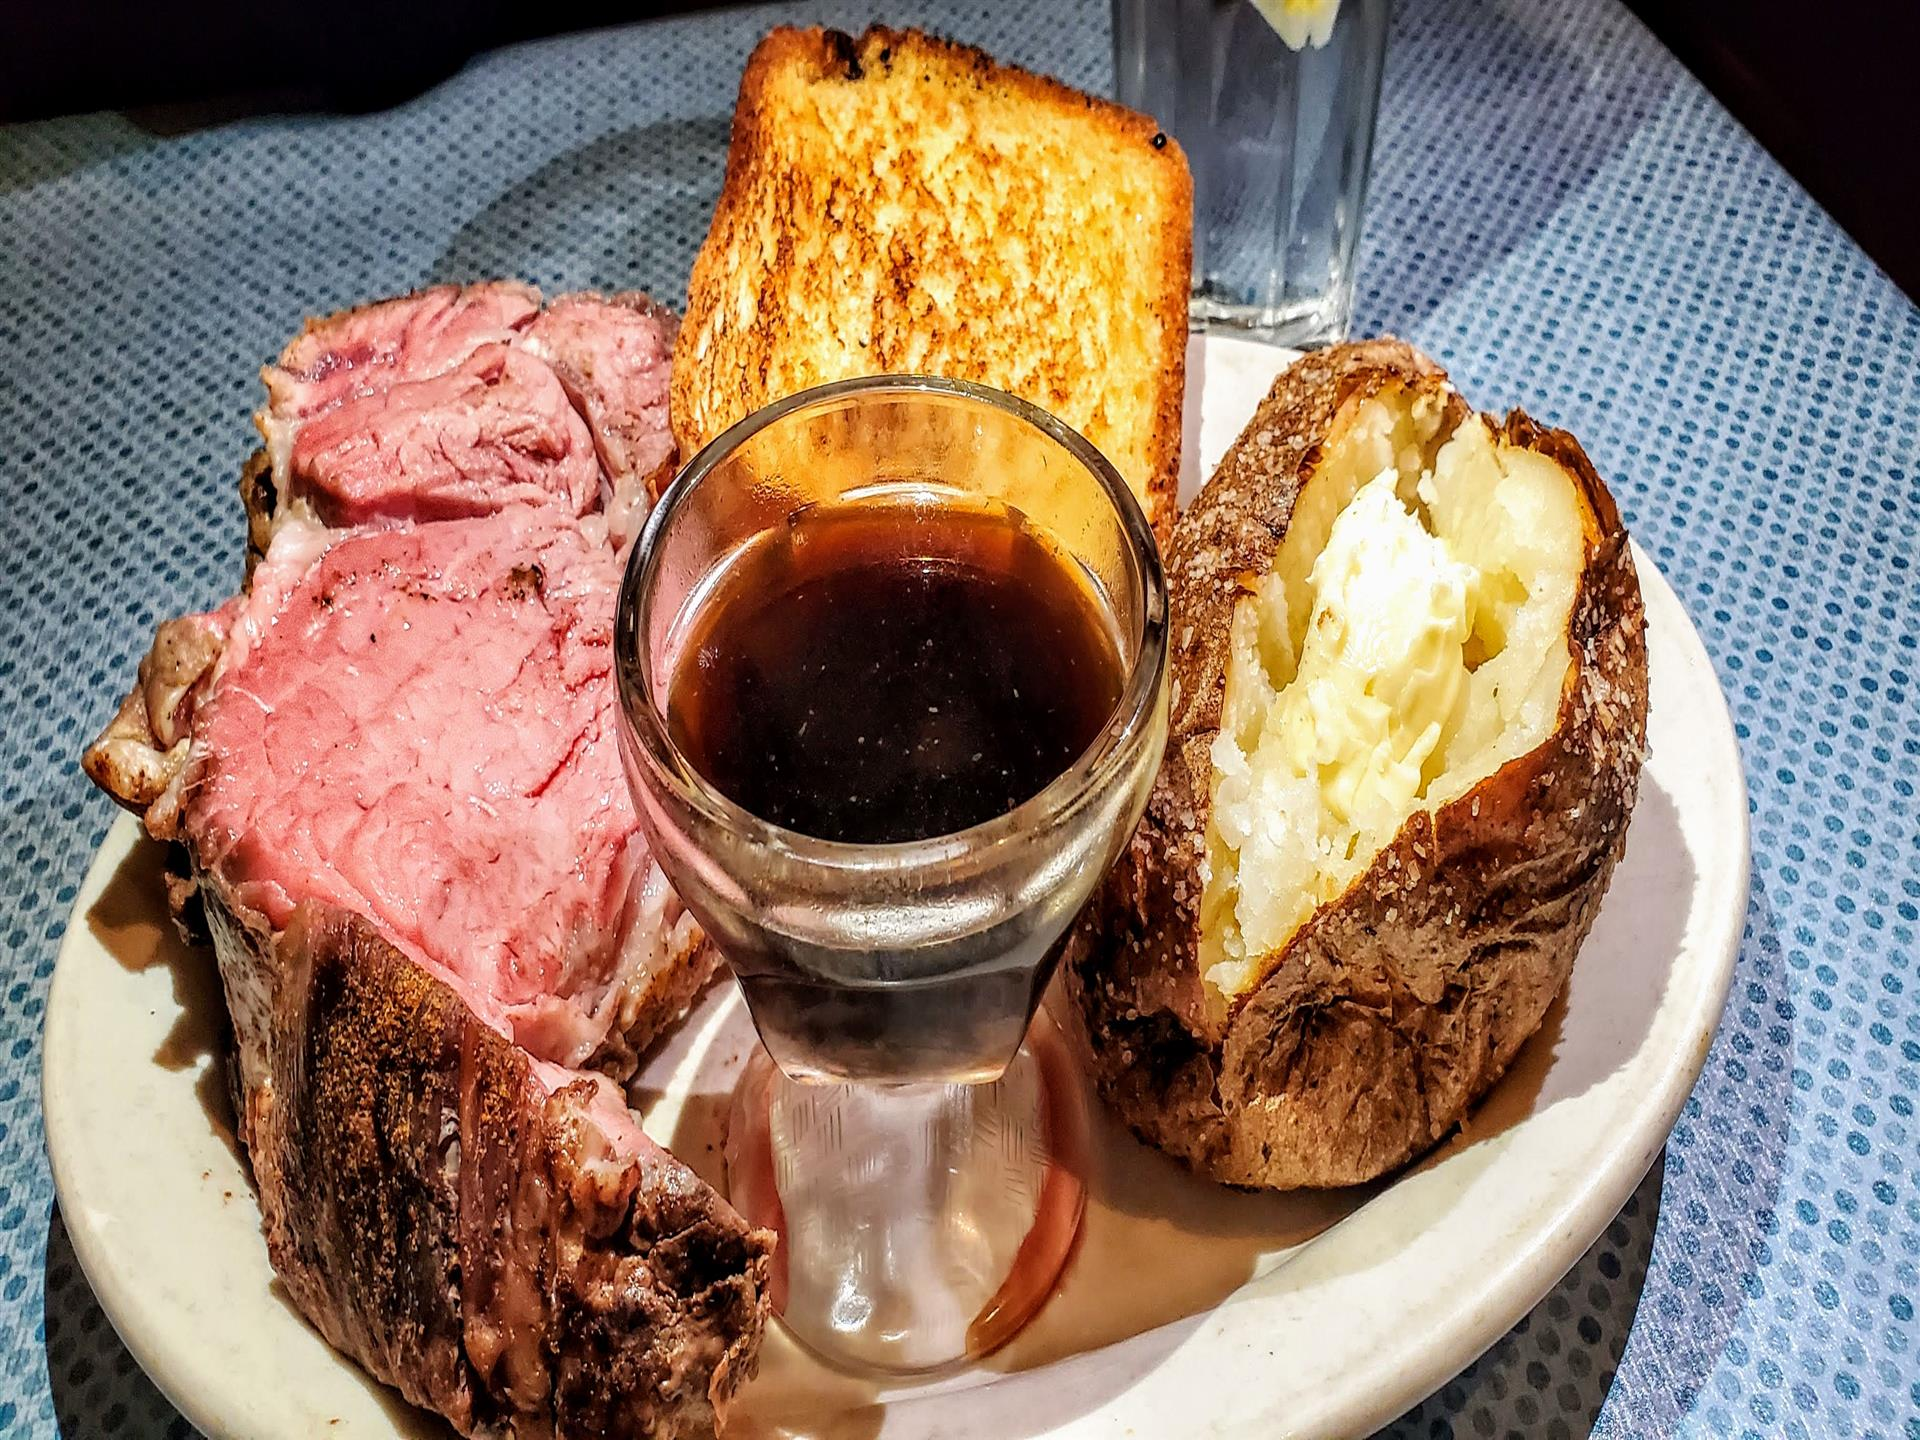 Prime Rib Feature - Friday and Saturdays only!